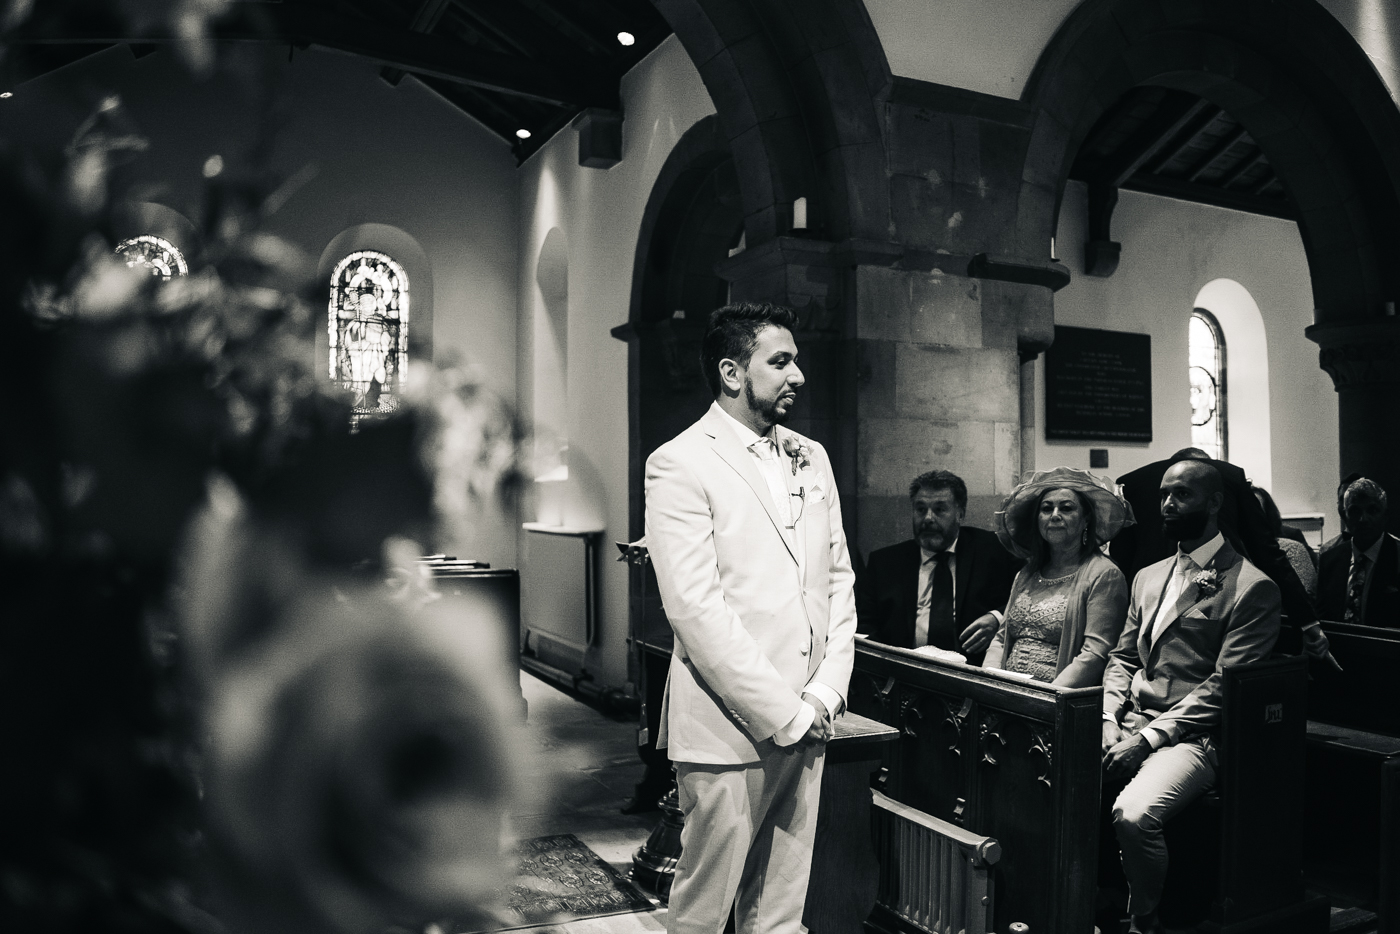 wedding-at-rudby-hall-north-yorkshire-teesside-photographer-0029.jpg